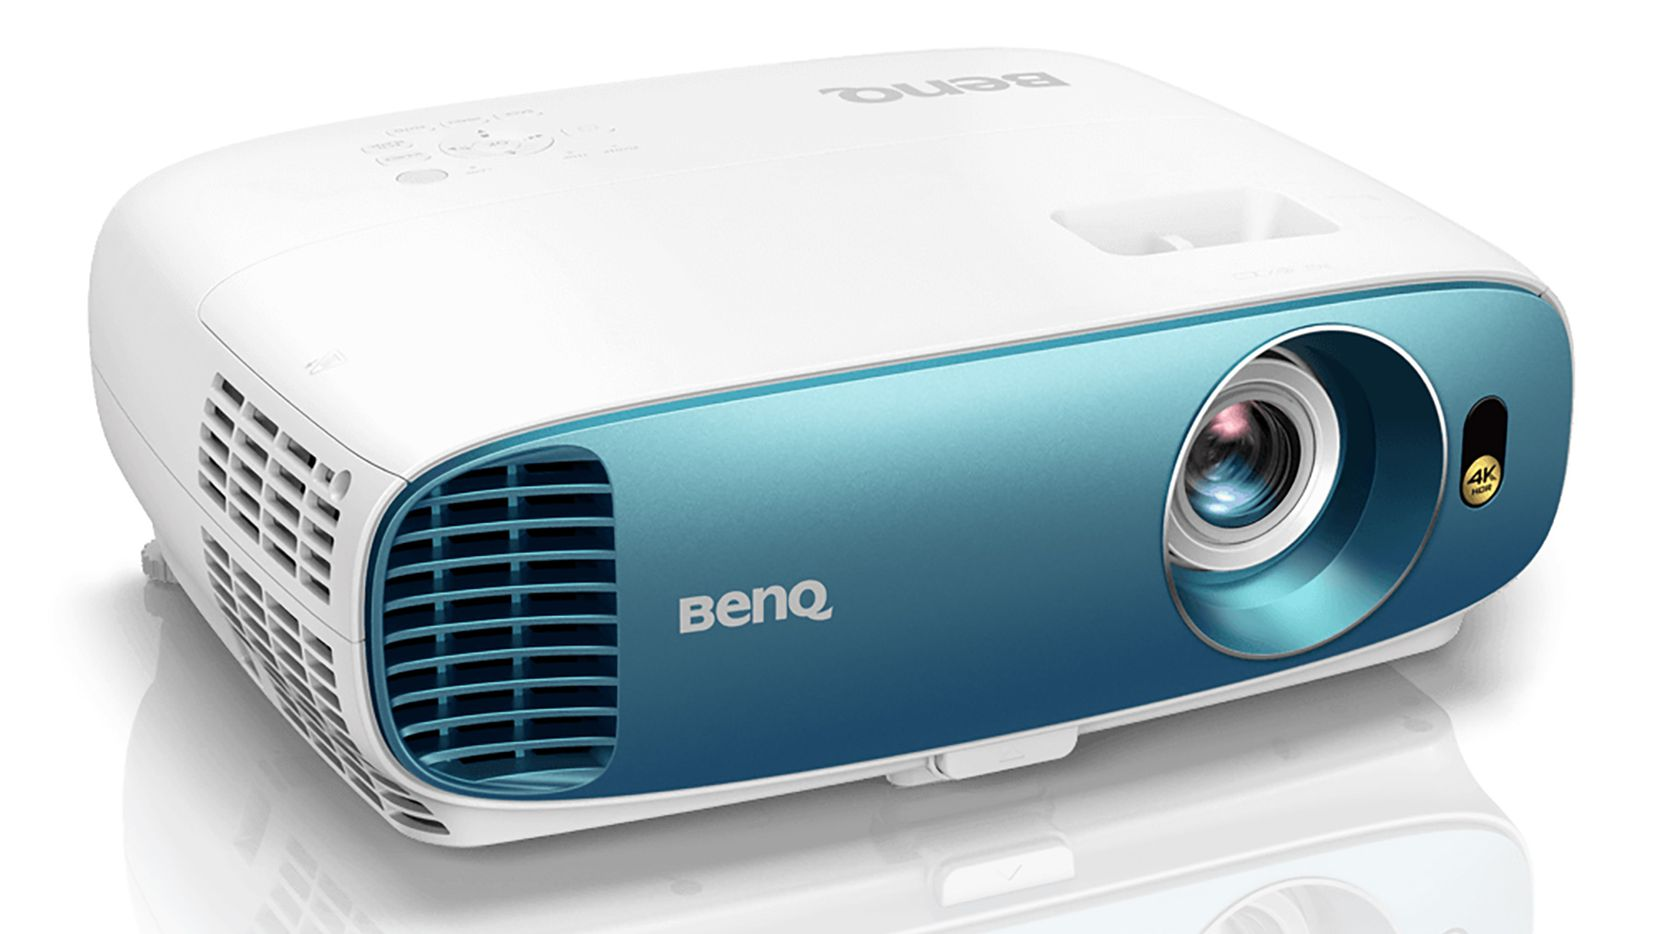 The Benq TK800 4K HDR projector is an affordable projector if you're not a 4K snob.